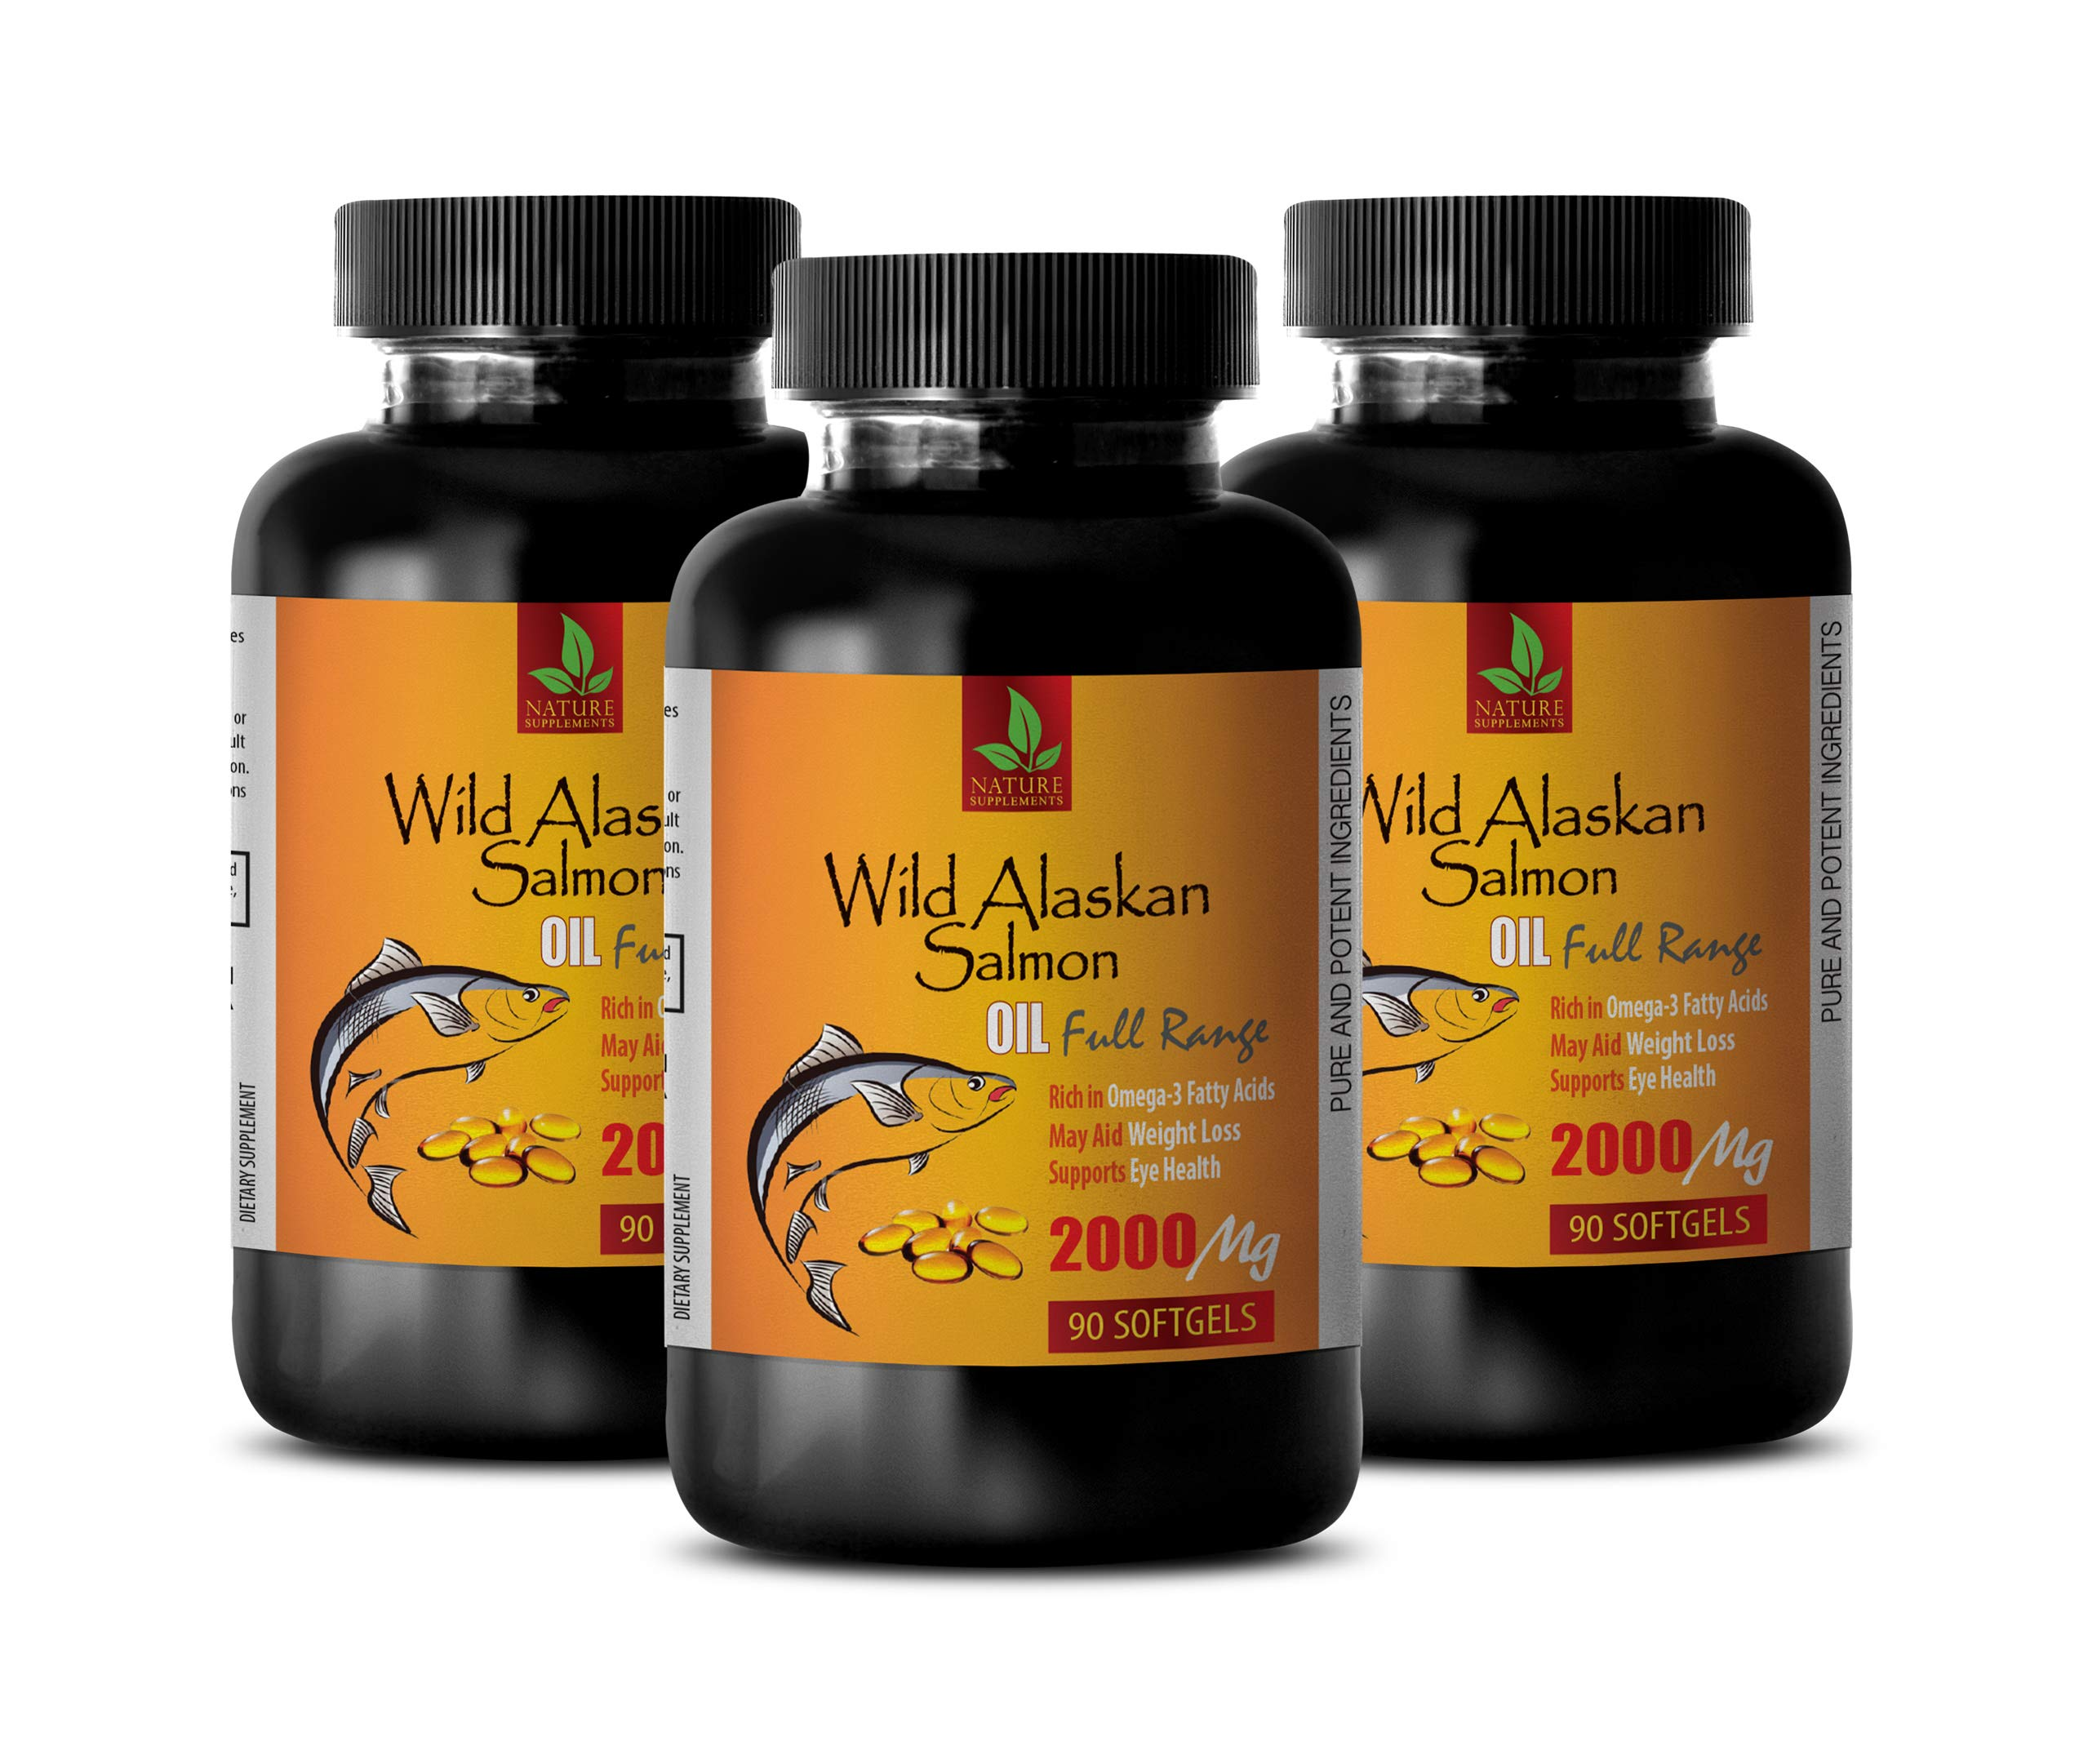 Brain Booster Vitamins - Wild Alaskan Salmon Oil 2000 mg - Rich in Omega 3 Fatty ACIDS - Omega 3 Fish Oil for Women - 3 Bottles 270 Softgels by NATURE SUPPLEMENTS